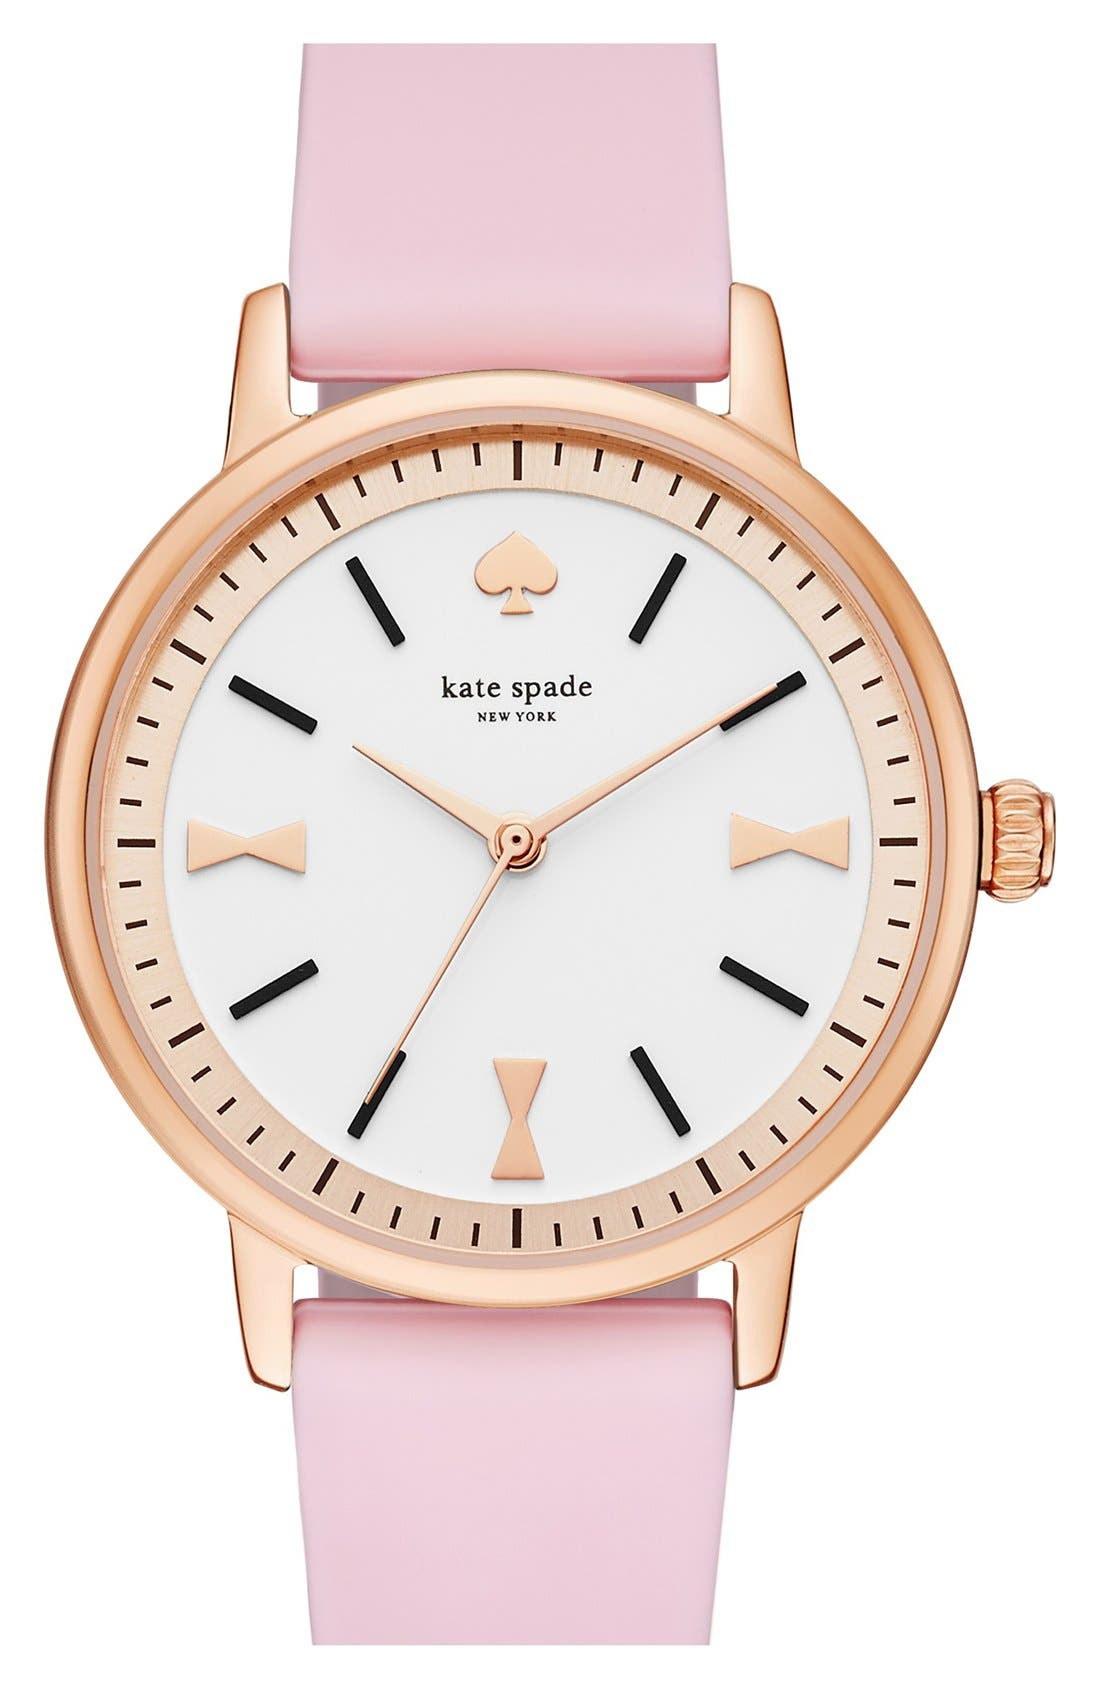 Main Image - kate spade new york'crosby' silicone strap watch, 34mm